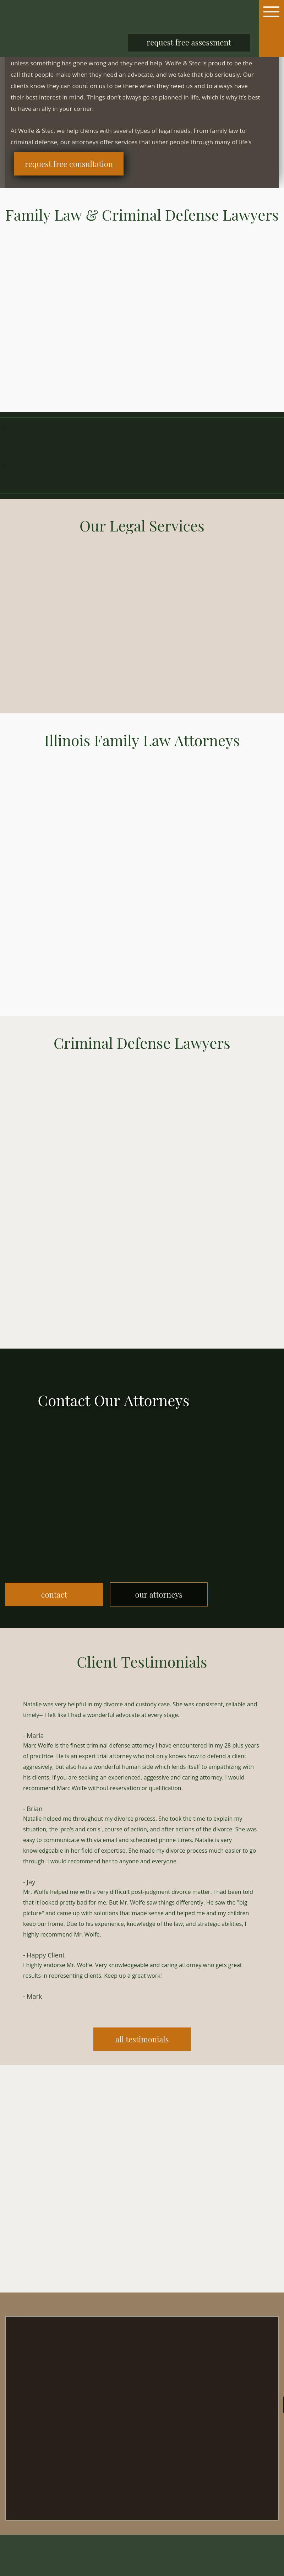 Wolfe & Stec, Ltd. - Chicago IL Lawyers